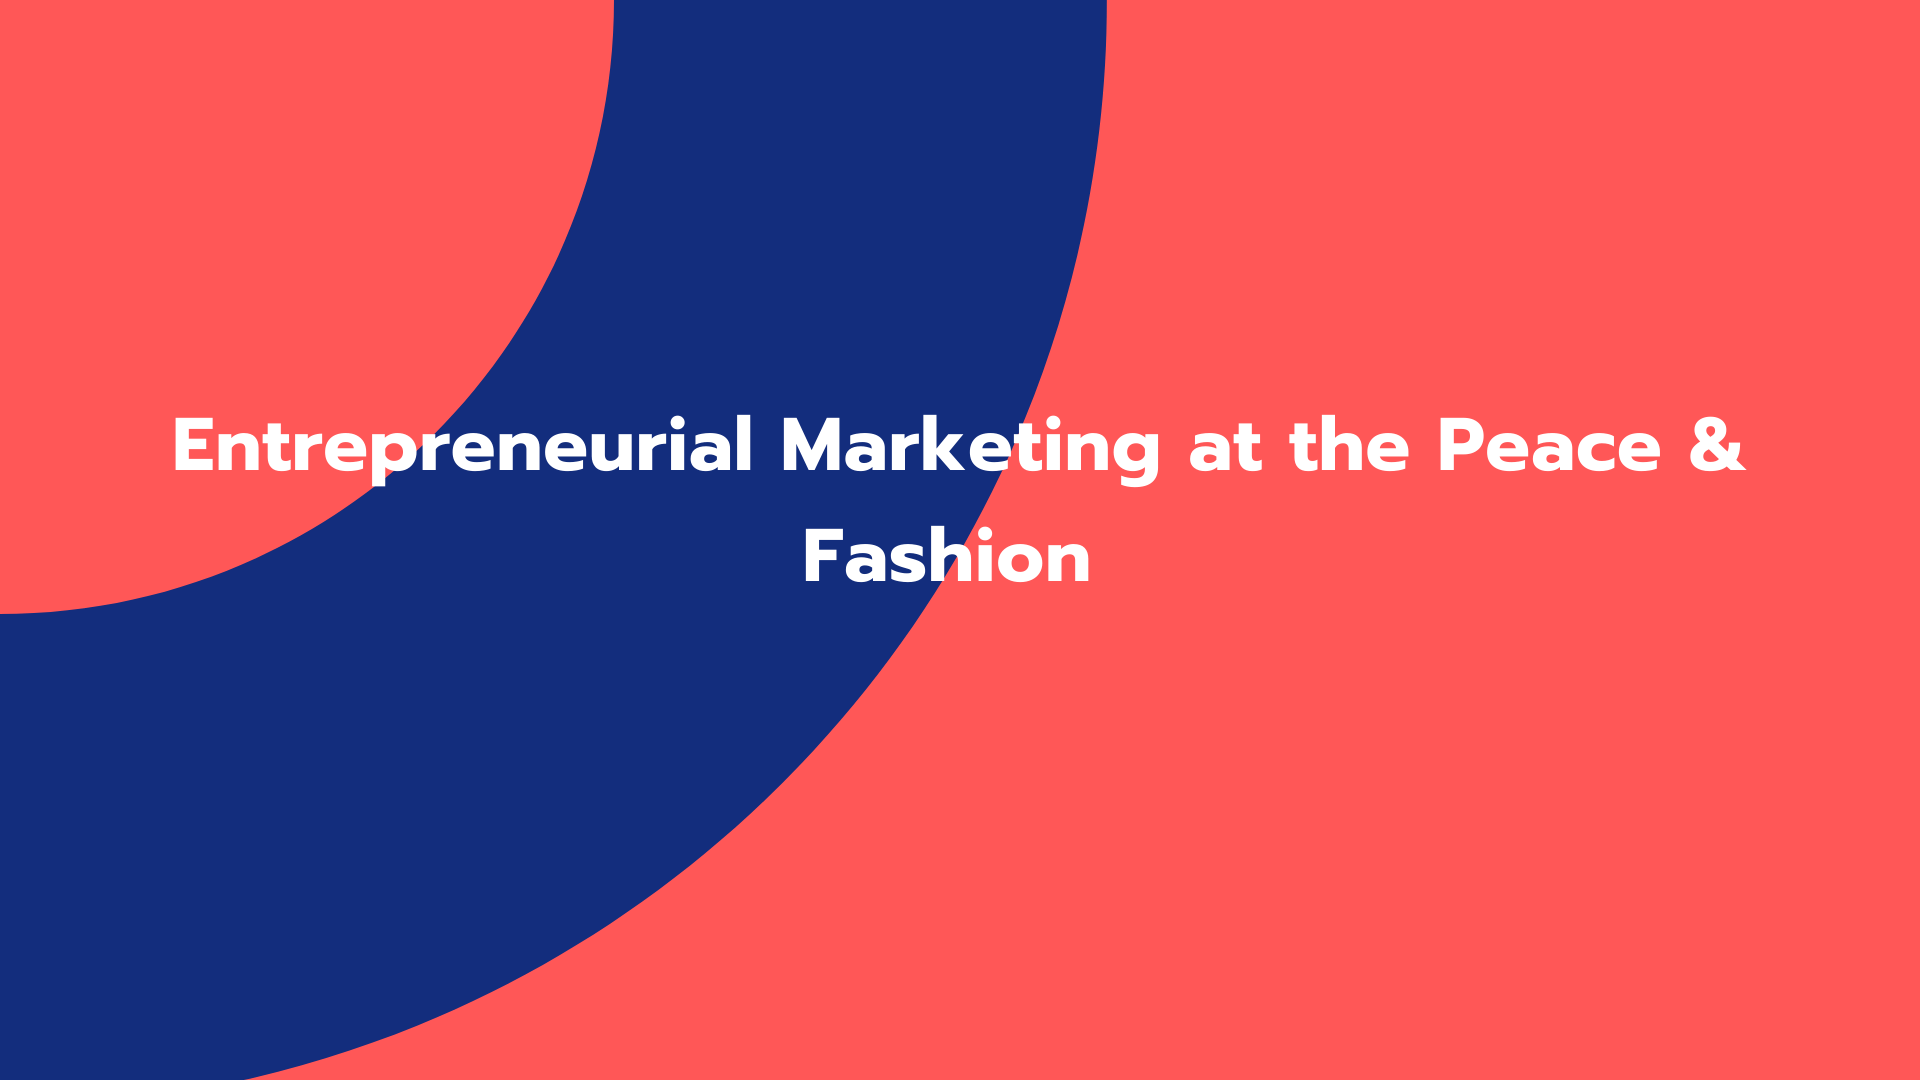 Entrepreneurial Marketing at the Peace & Fashion